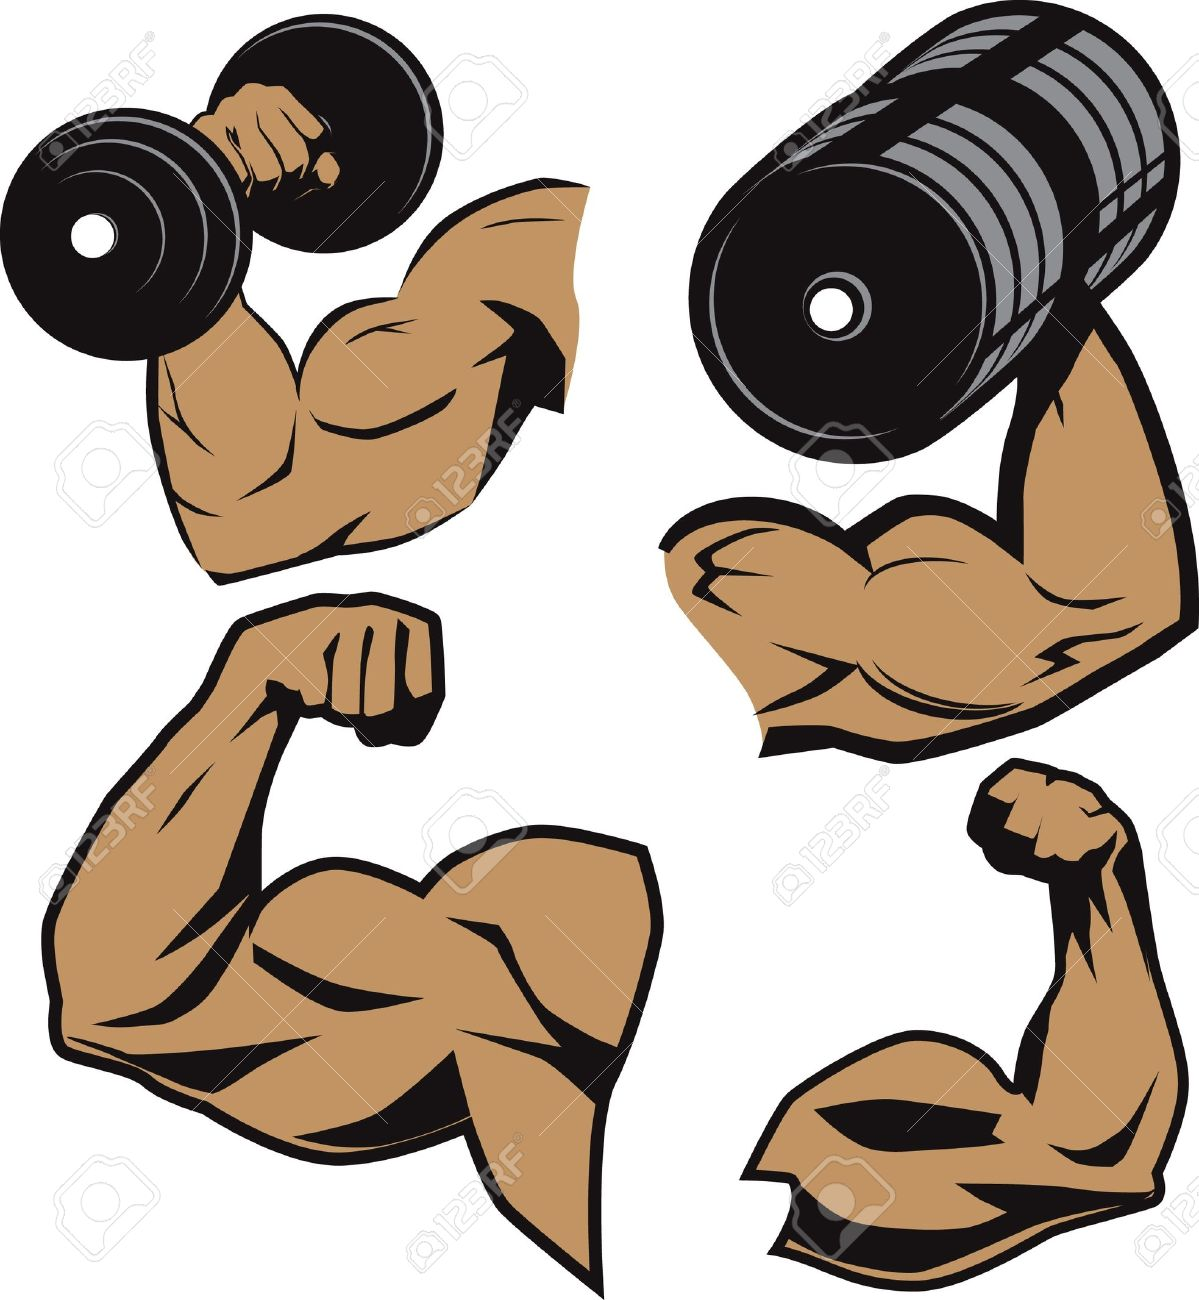 2267 Arms free clipart.